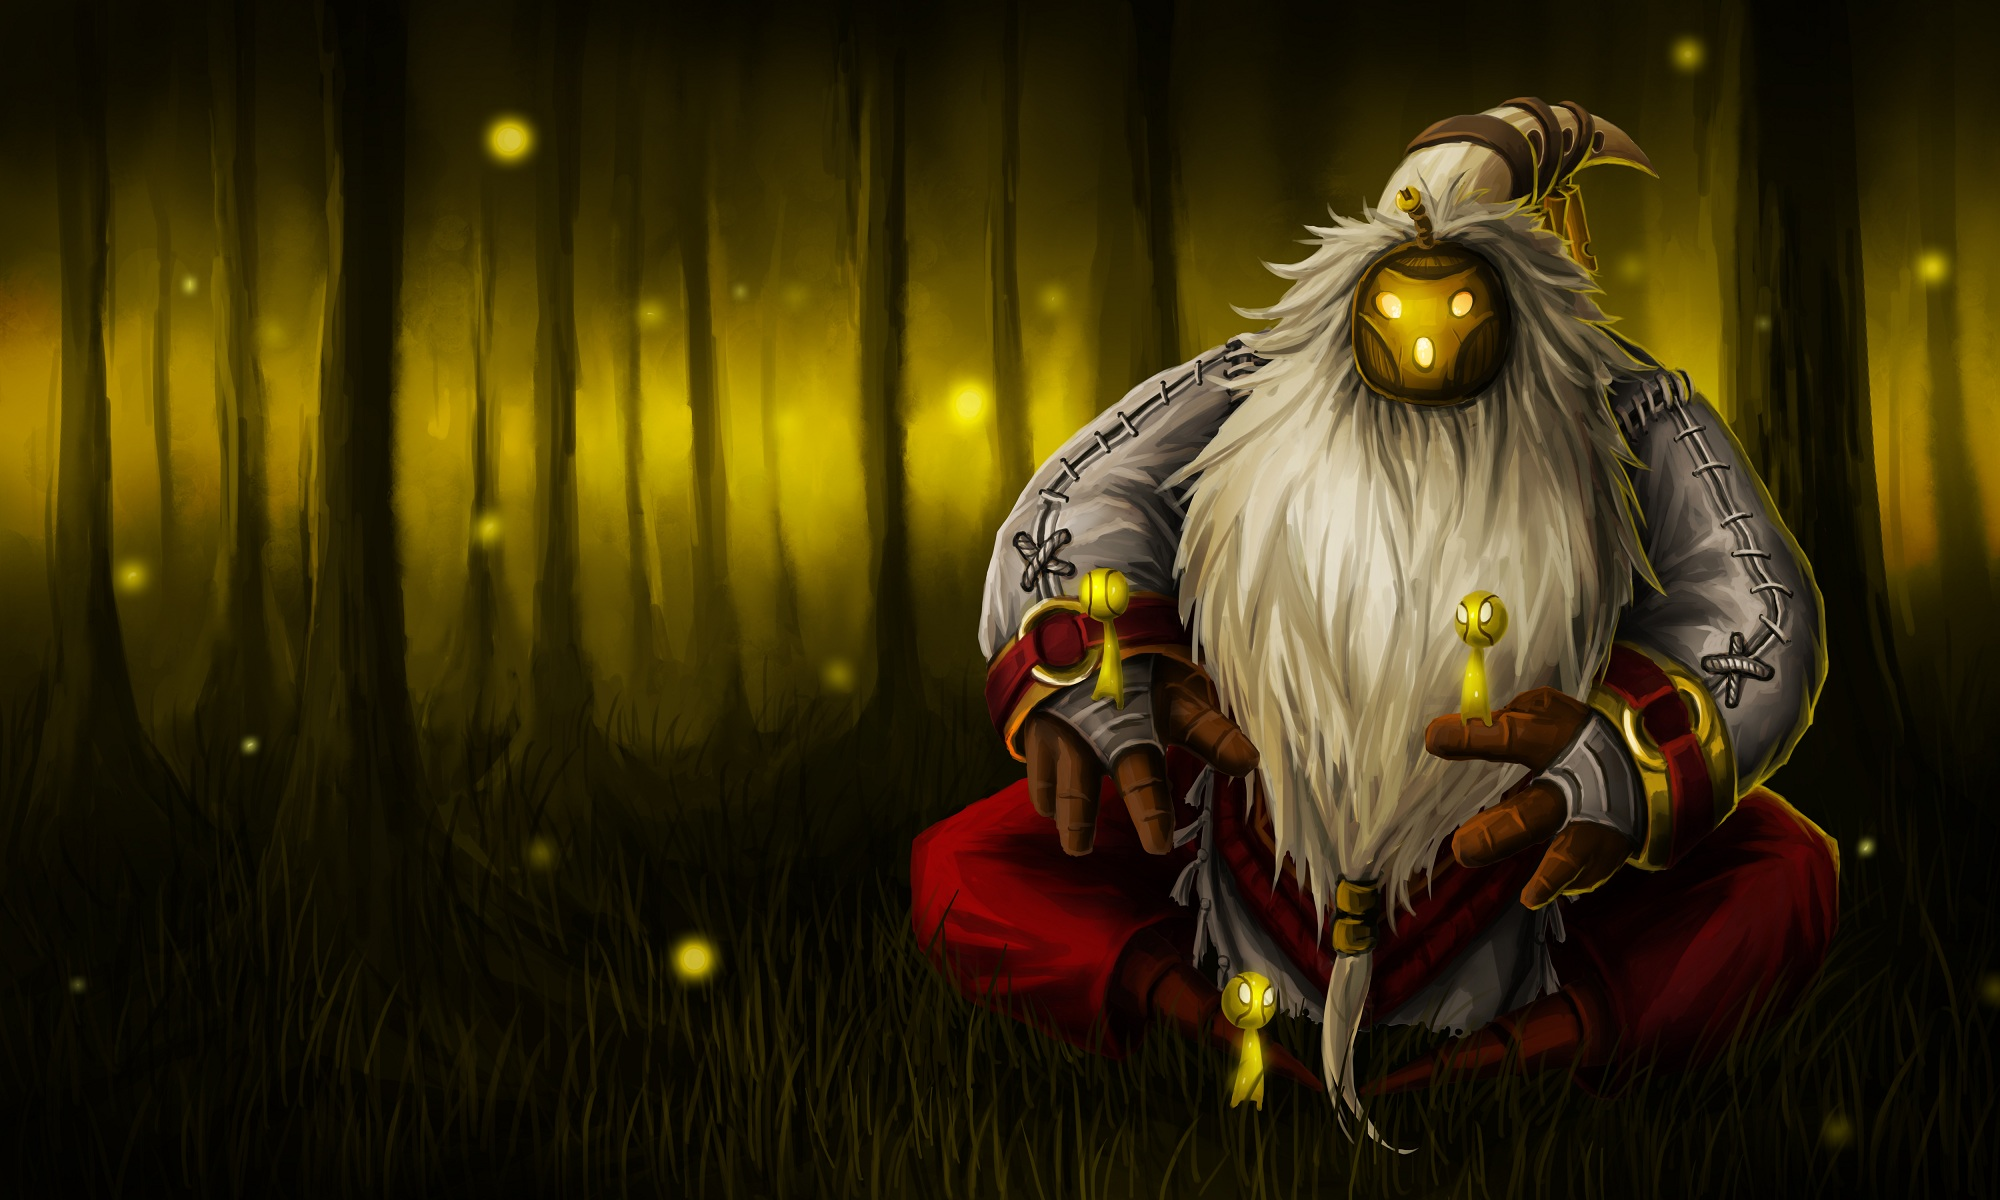 Bard Minimalistic League Of Legends Wallpapers League Of: League Of Legends Montage